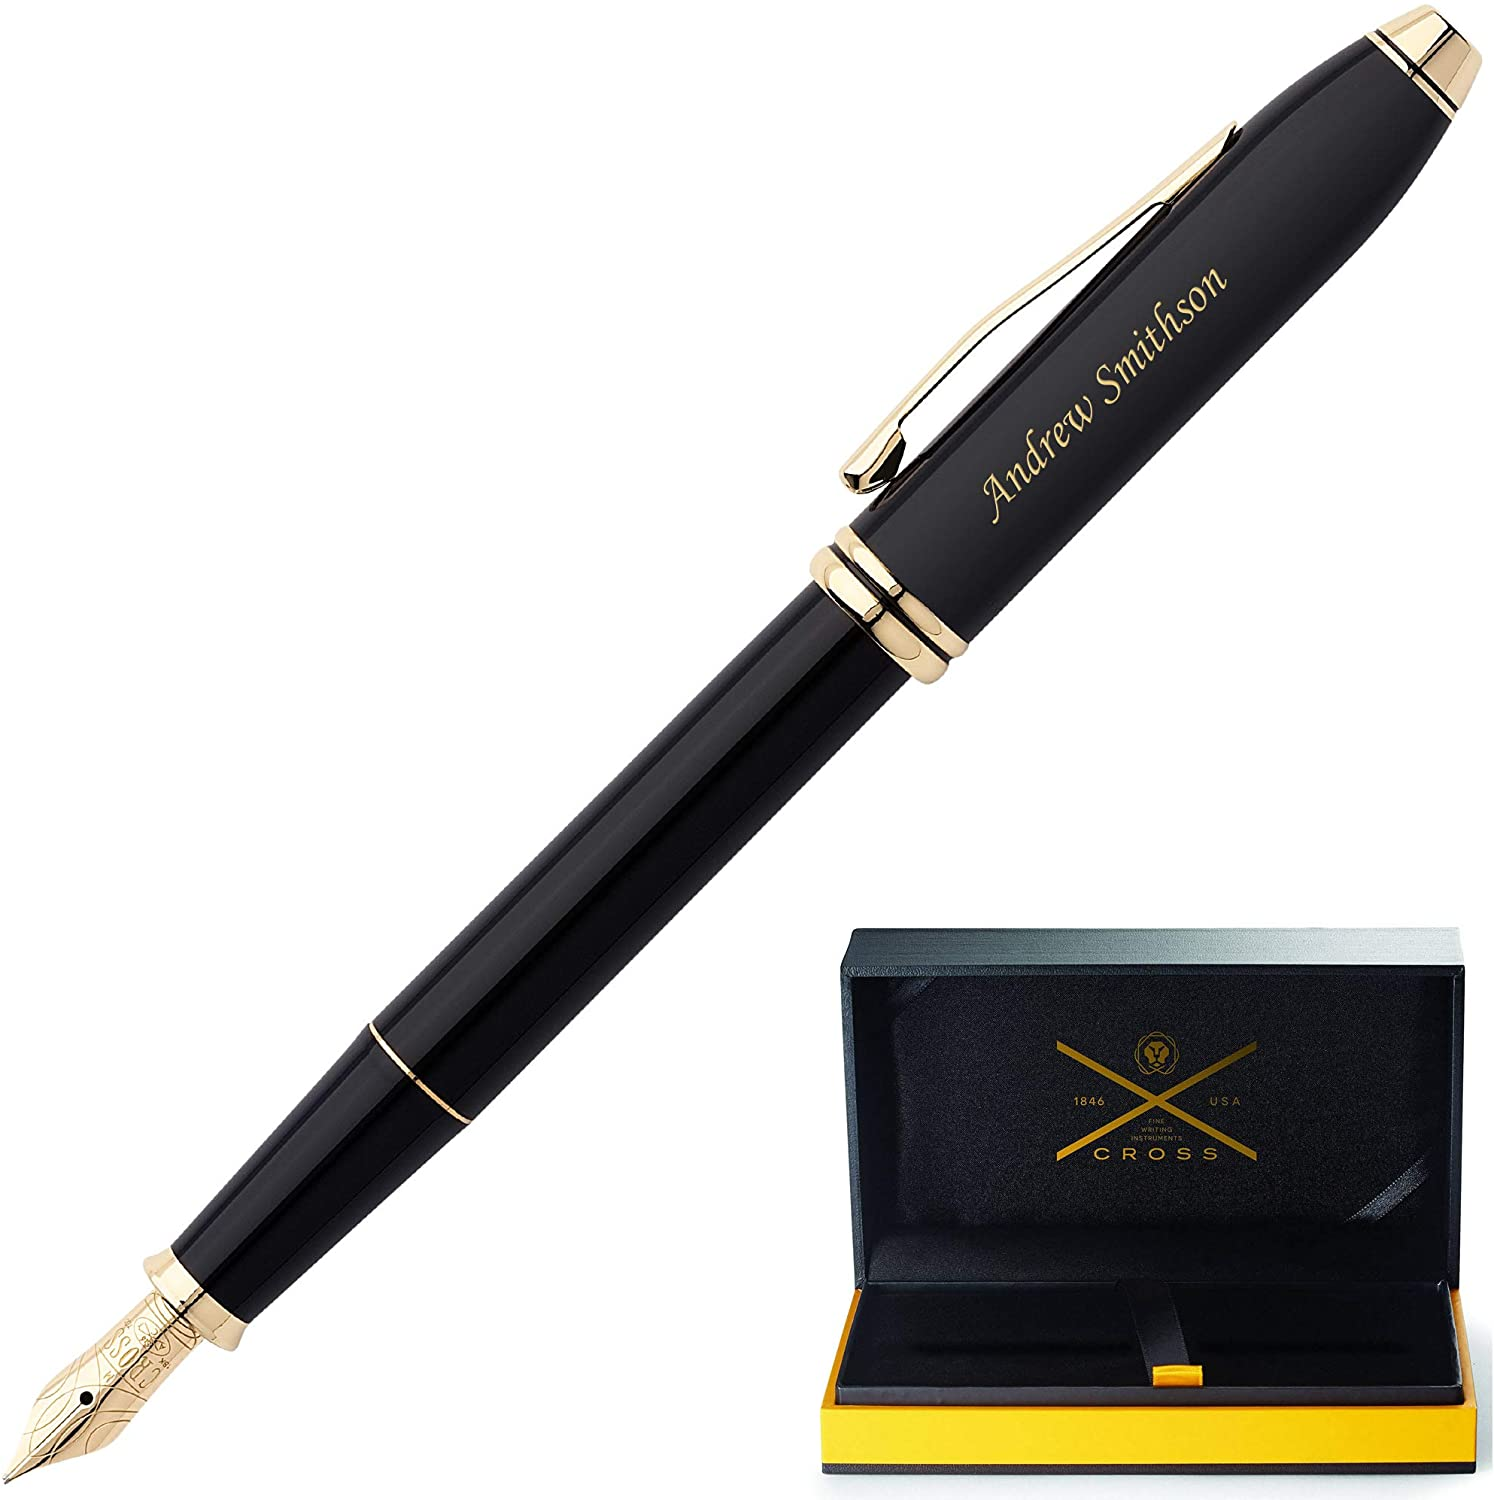 Cross Fountain Pen | Engraved/Personalized Cross Townsend Black with 23krt Gold Fountain Pen - Medium nib Customized - Custom Engraved Fast.